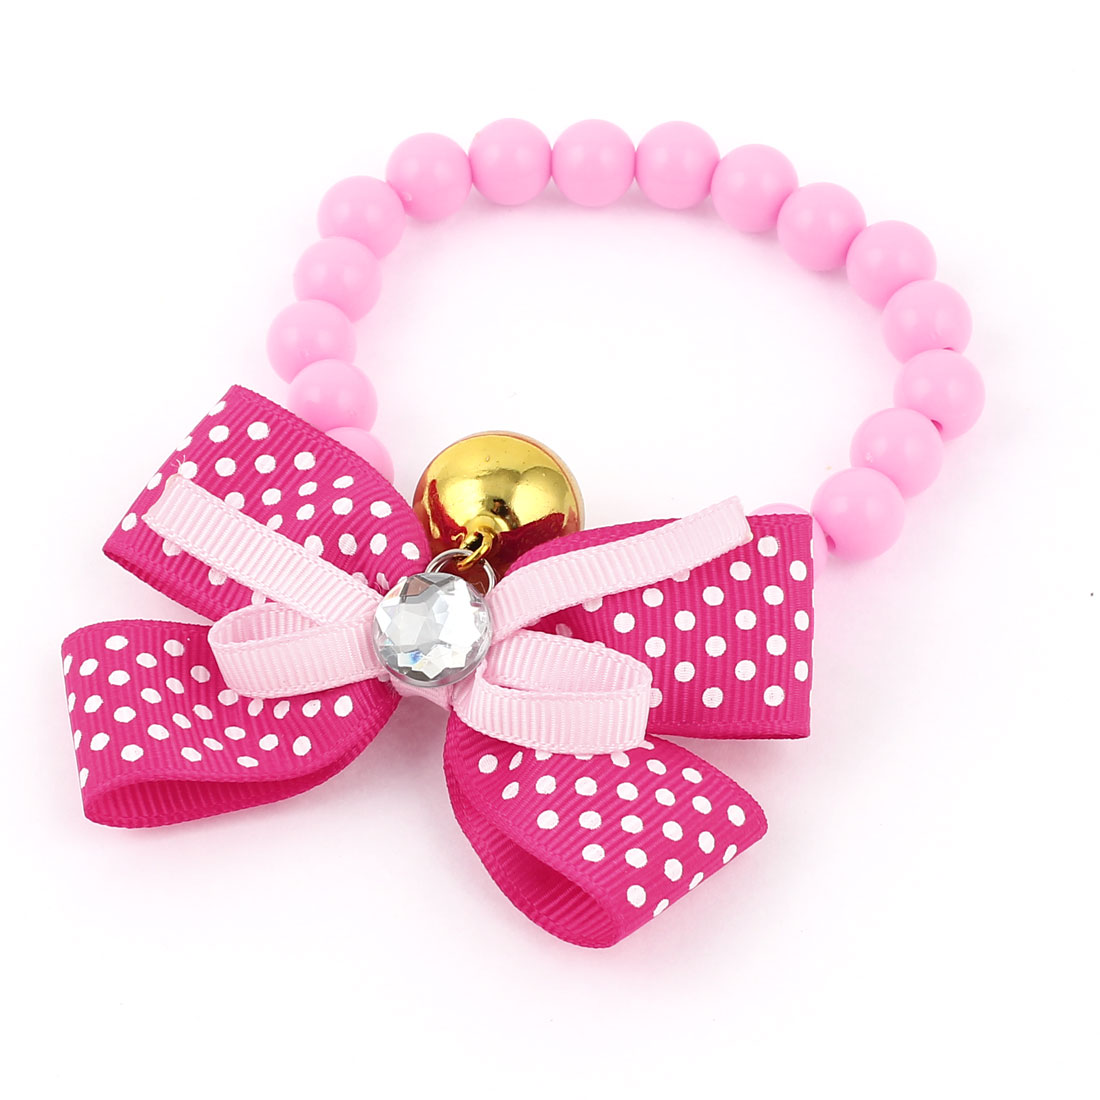 Metal Bell Pendant Bowtie Accent Pet Dog Plastic Beads Collar Necklace Pink Fuchsia XS